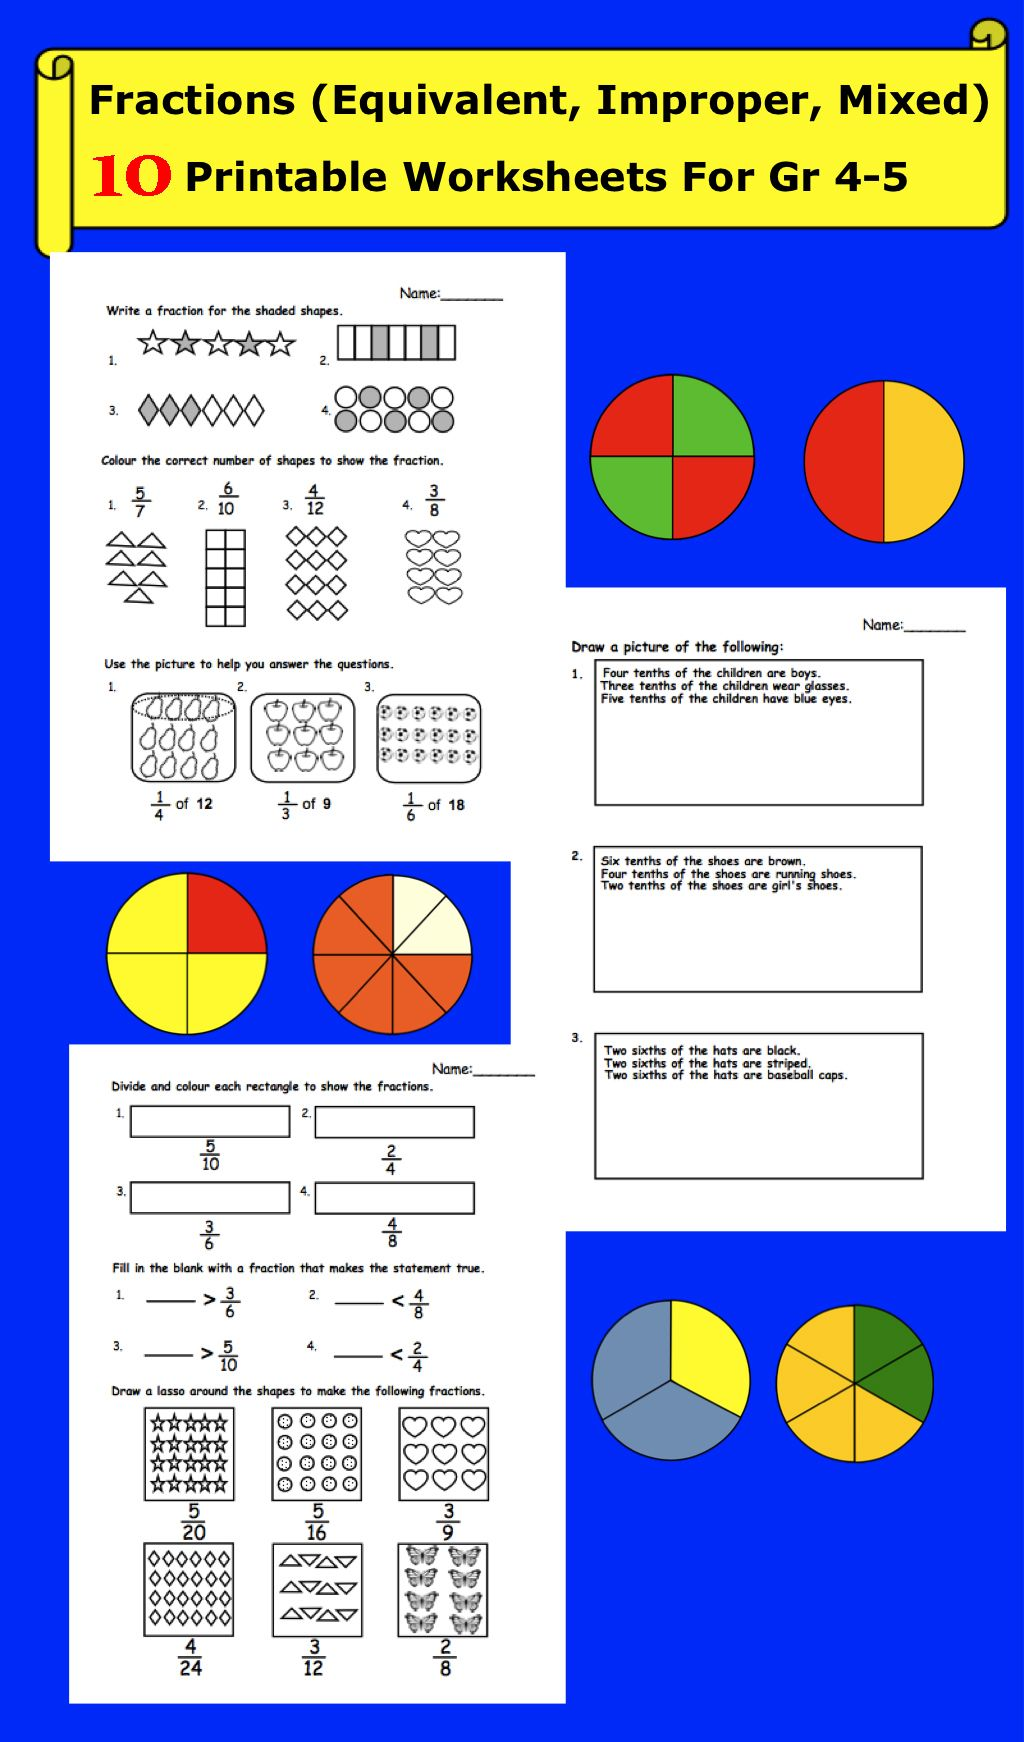 fractions equivalent improper mixed printable worksheets for gr 4 5 math equivalent. Black Bedroom Furniture Sets. Home Design Ideas